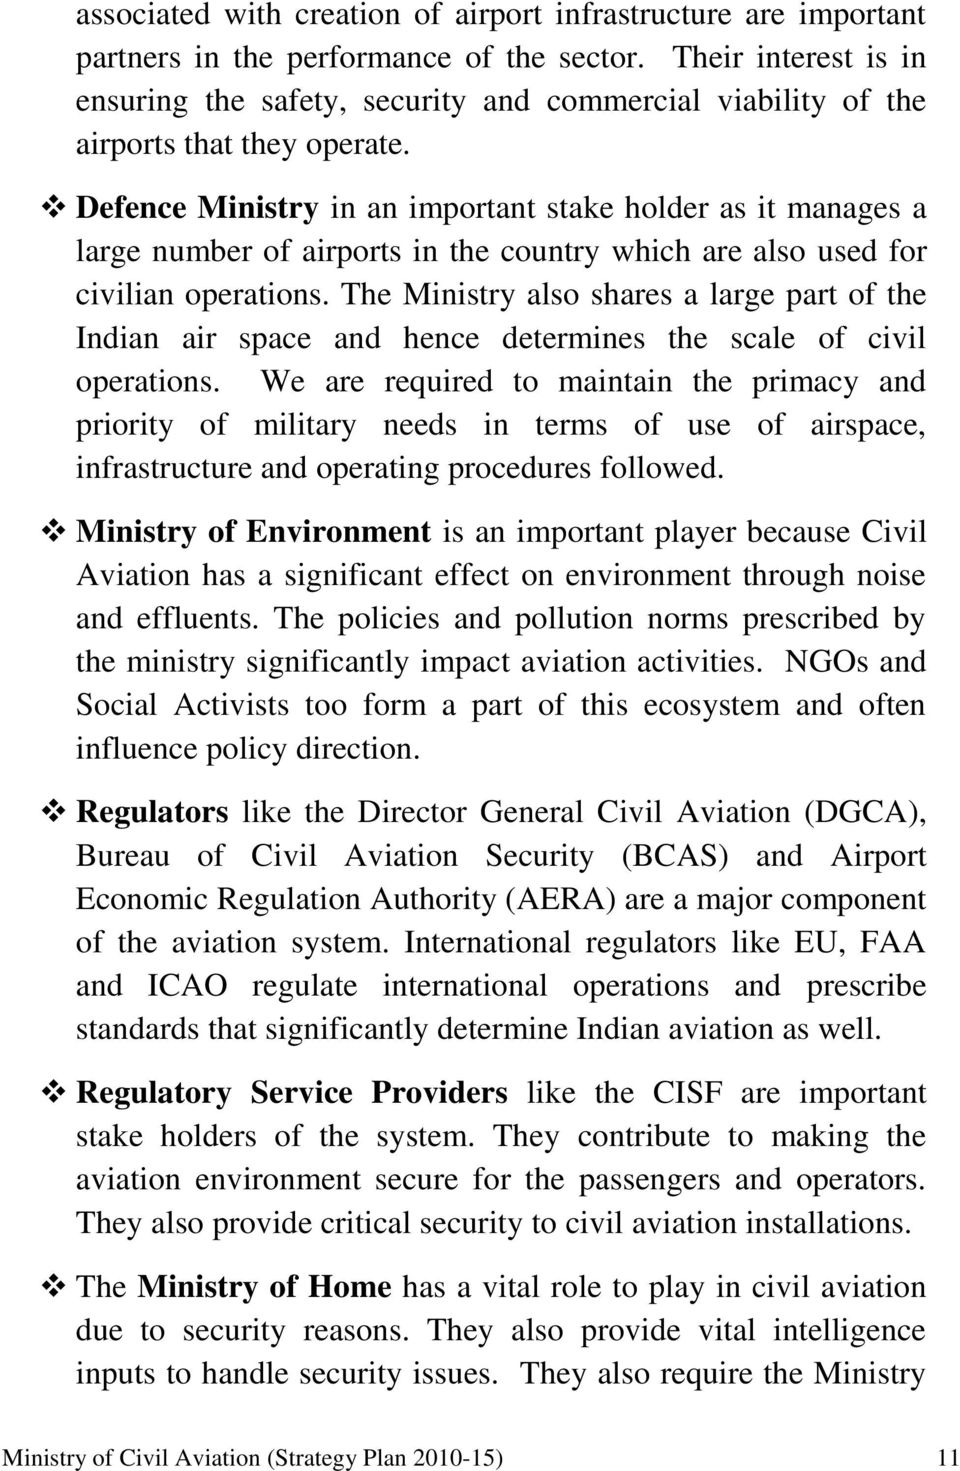 Defence Ministry in an important stake holder as it manages a large number of airports in the country which are also used for civilian operations.